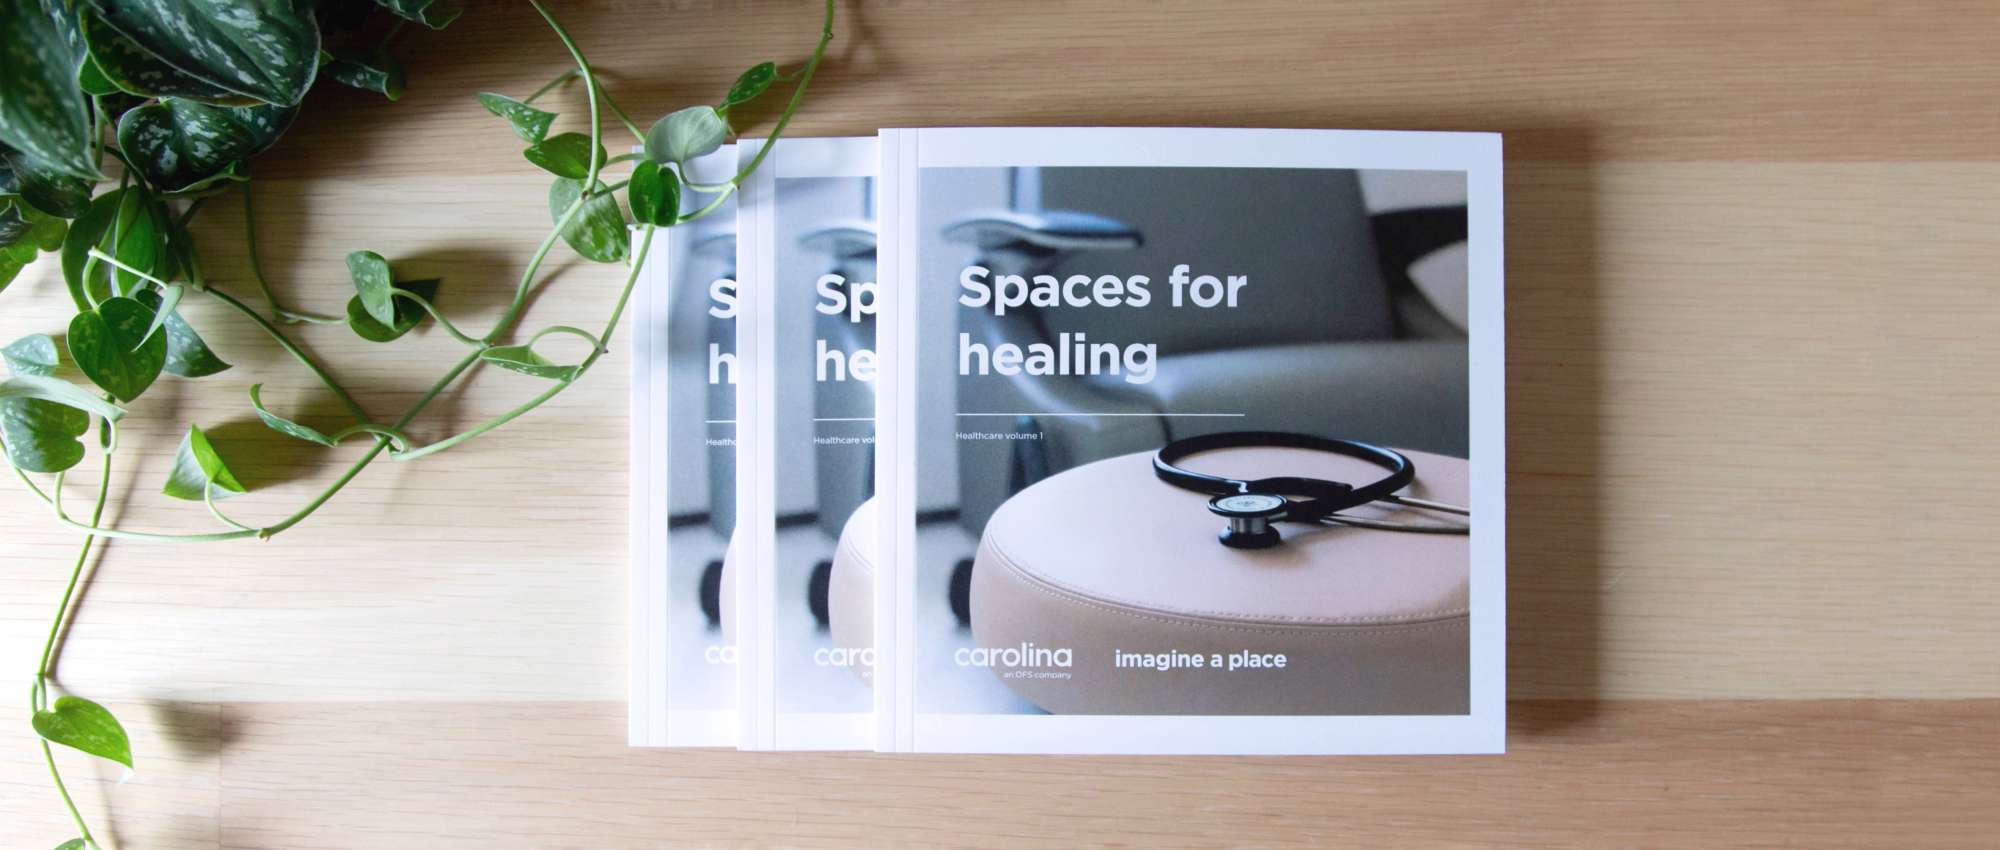 Healing Spaces Lookbook